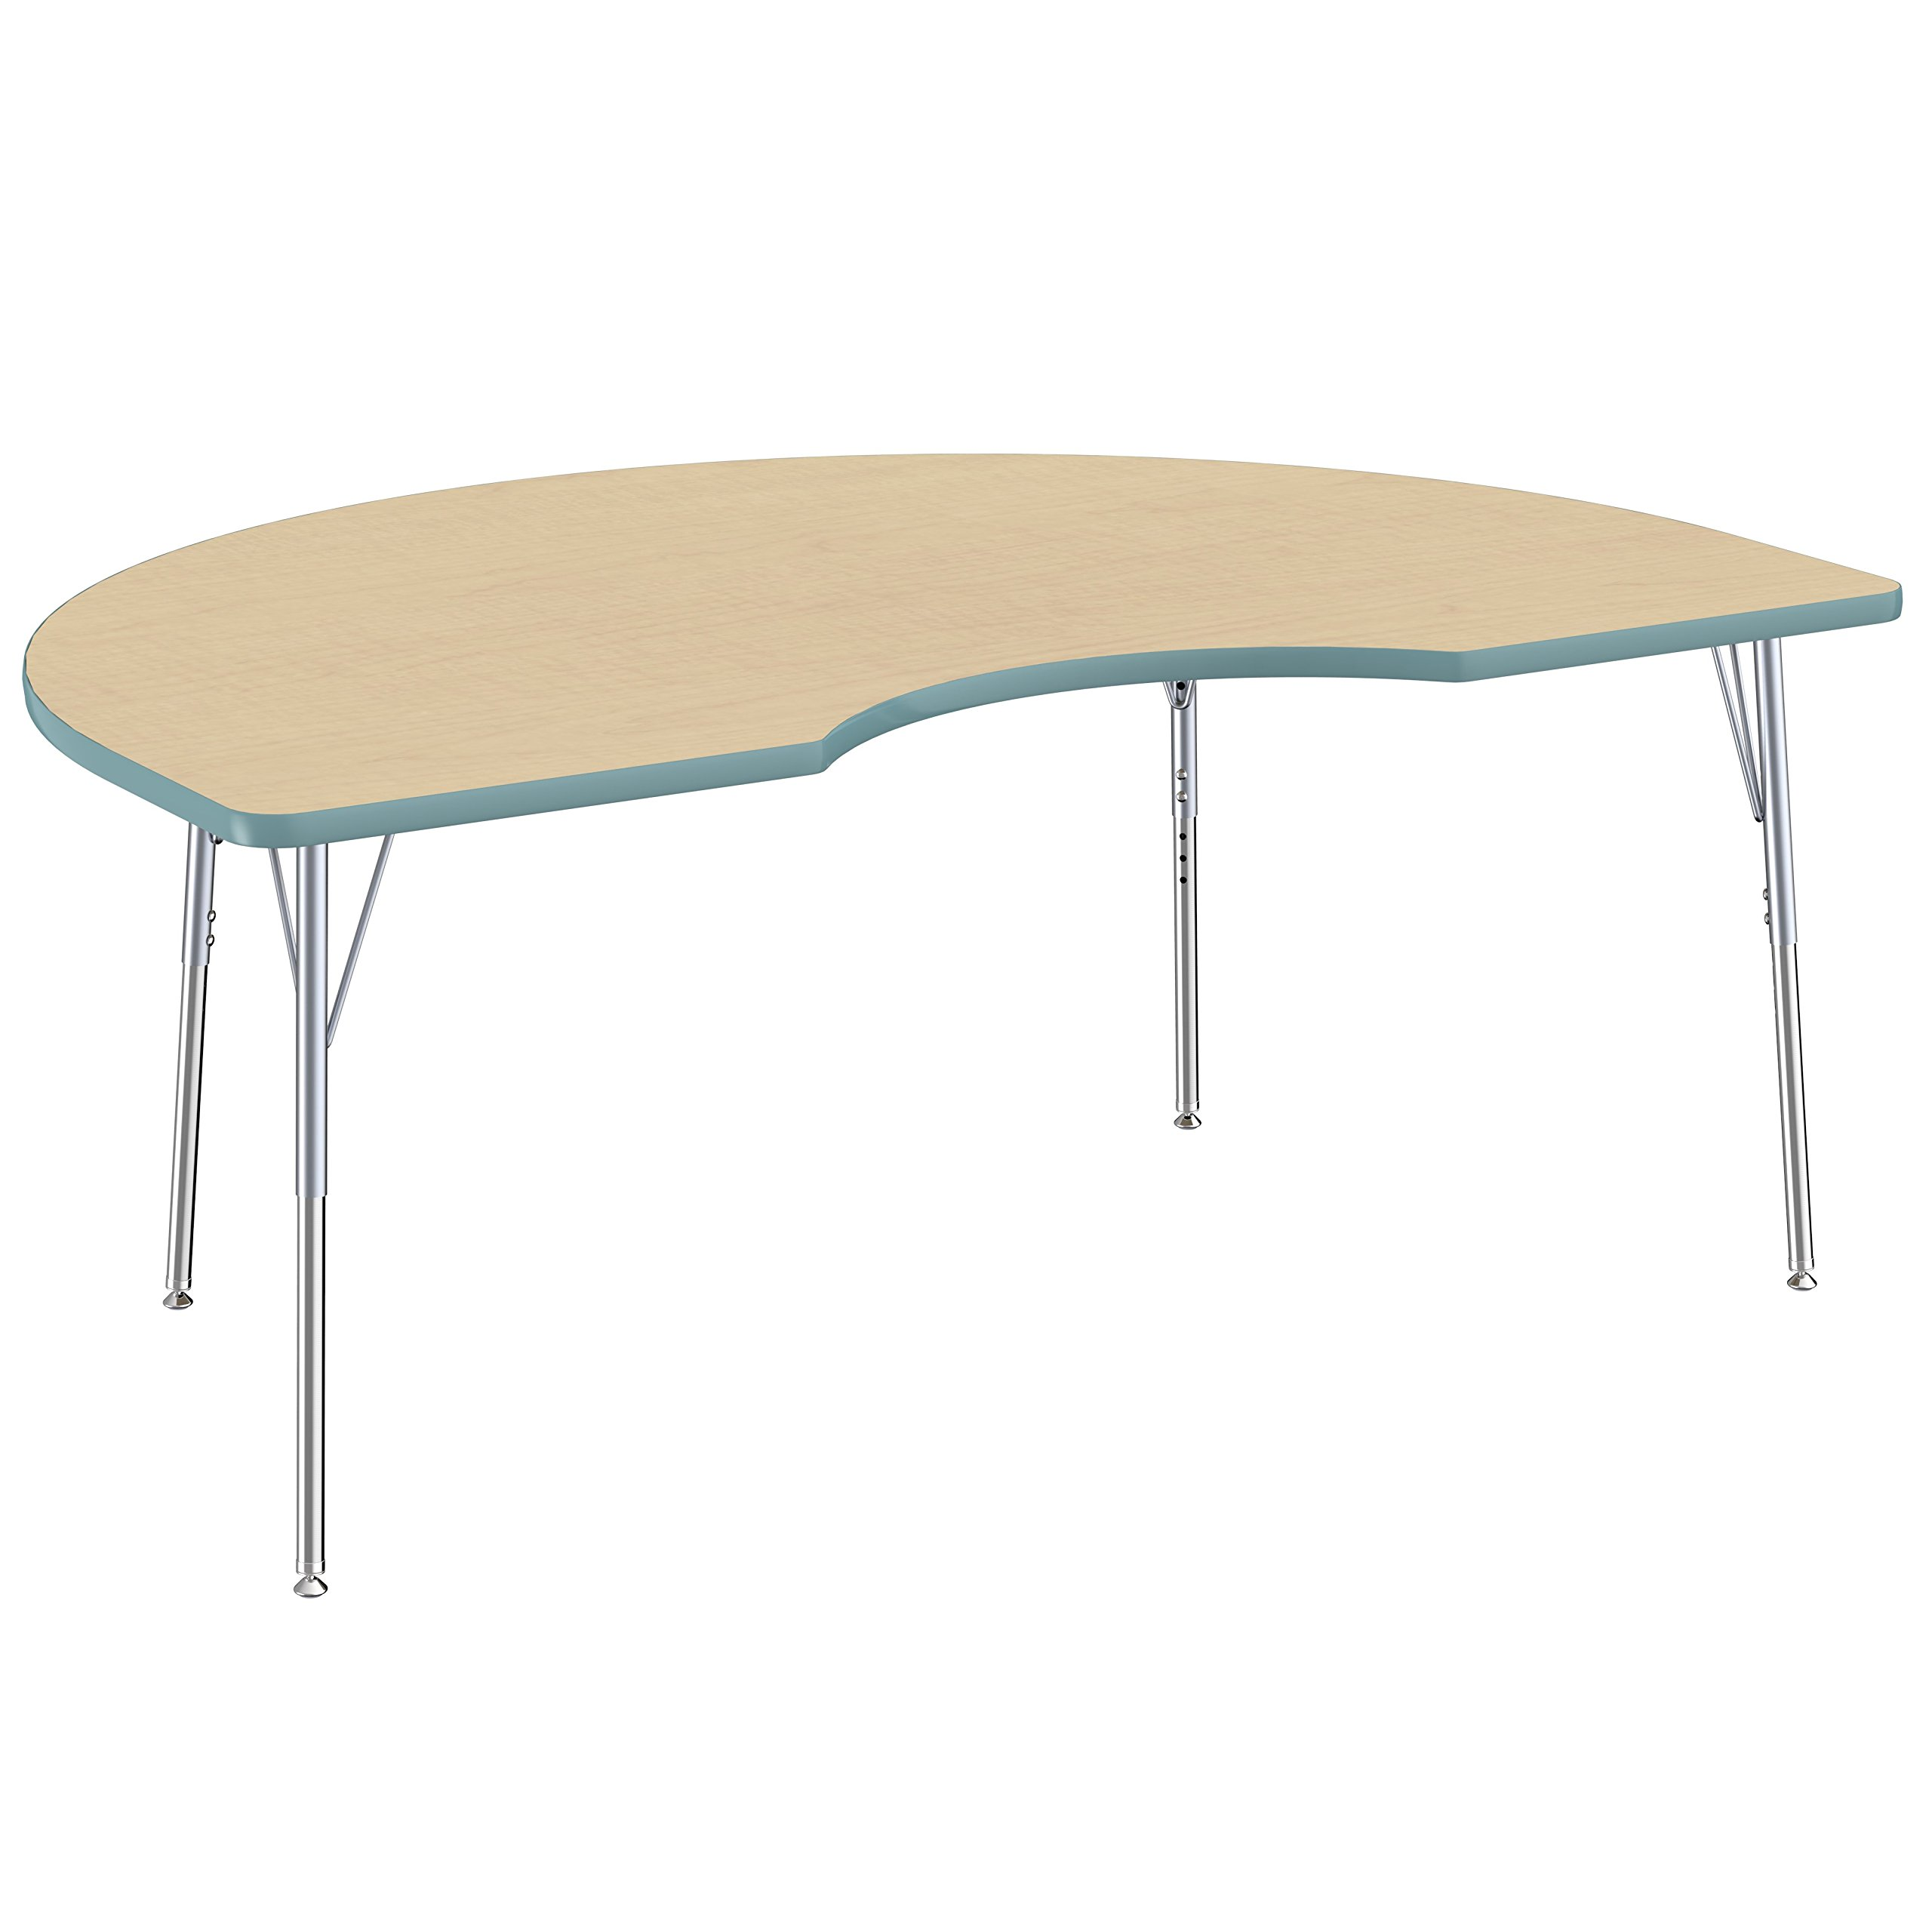 FDP Kidney Premium Contour Activity School and Office Table (48 x 72 inch), Standard Legs with Swivel Glides for Collaborative Spaces, Adjustable Height 19-30 inches - Maple Top and Seafoam Edge